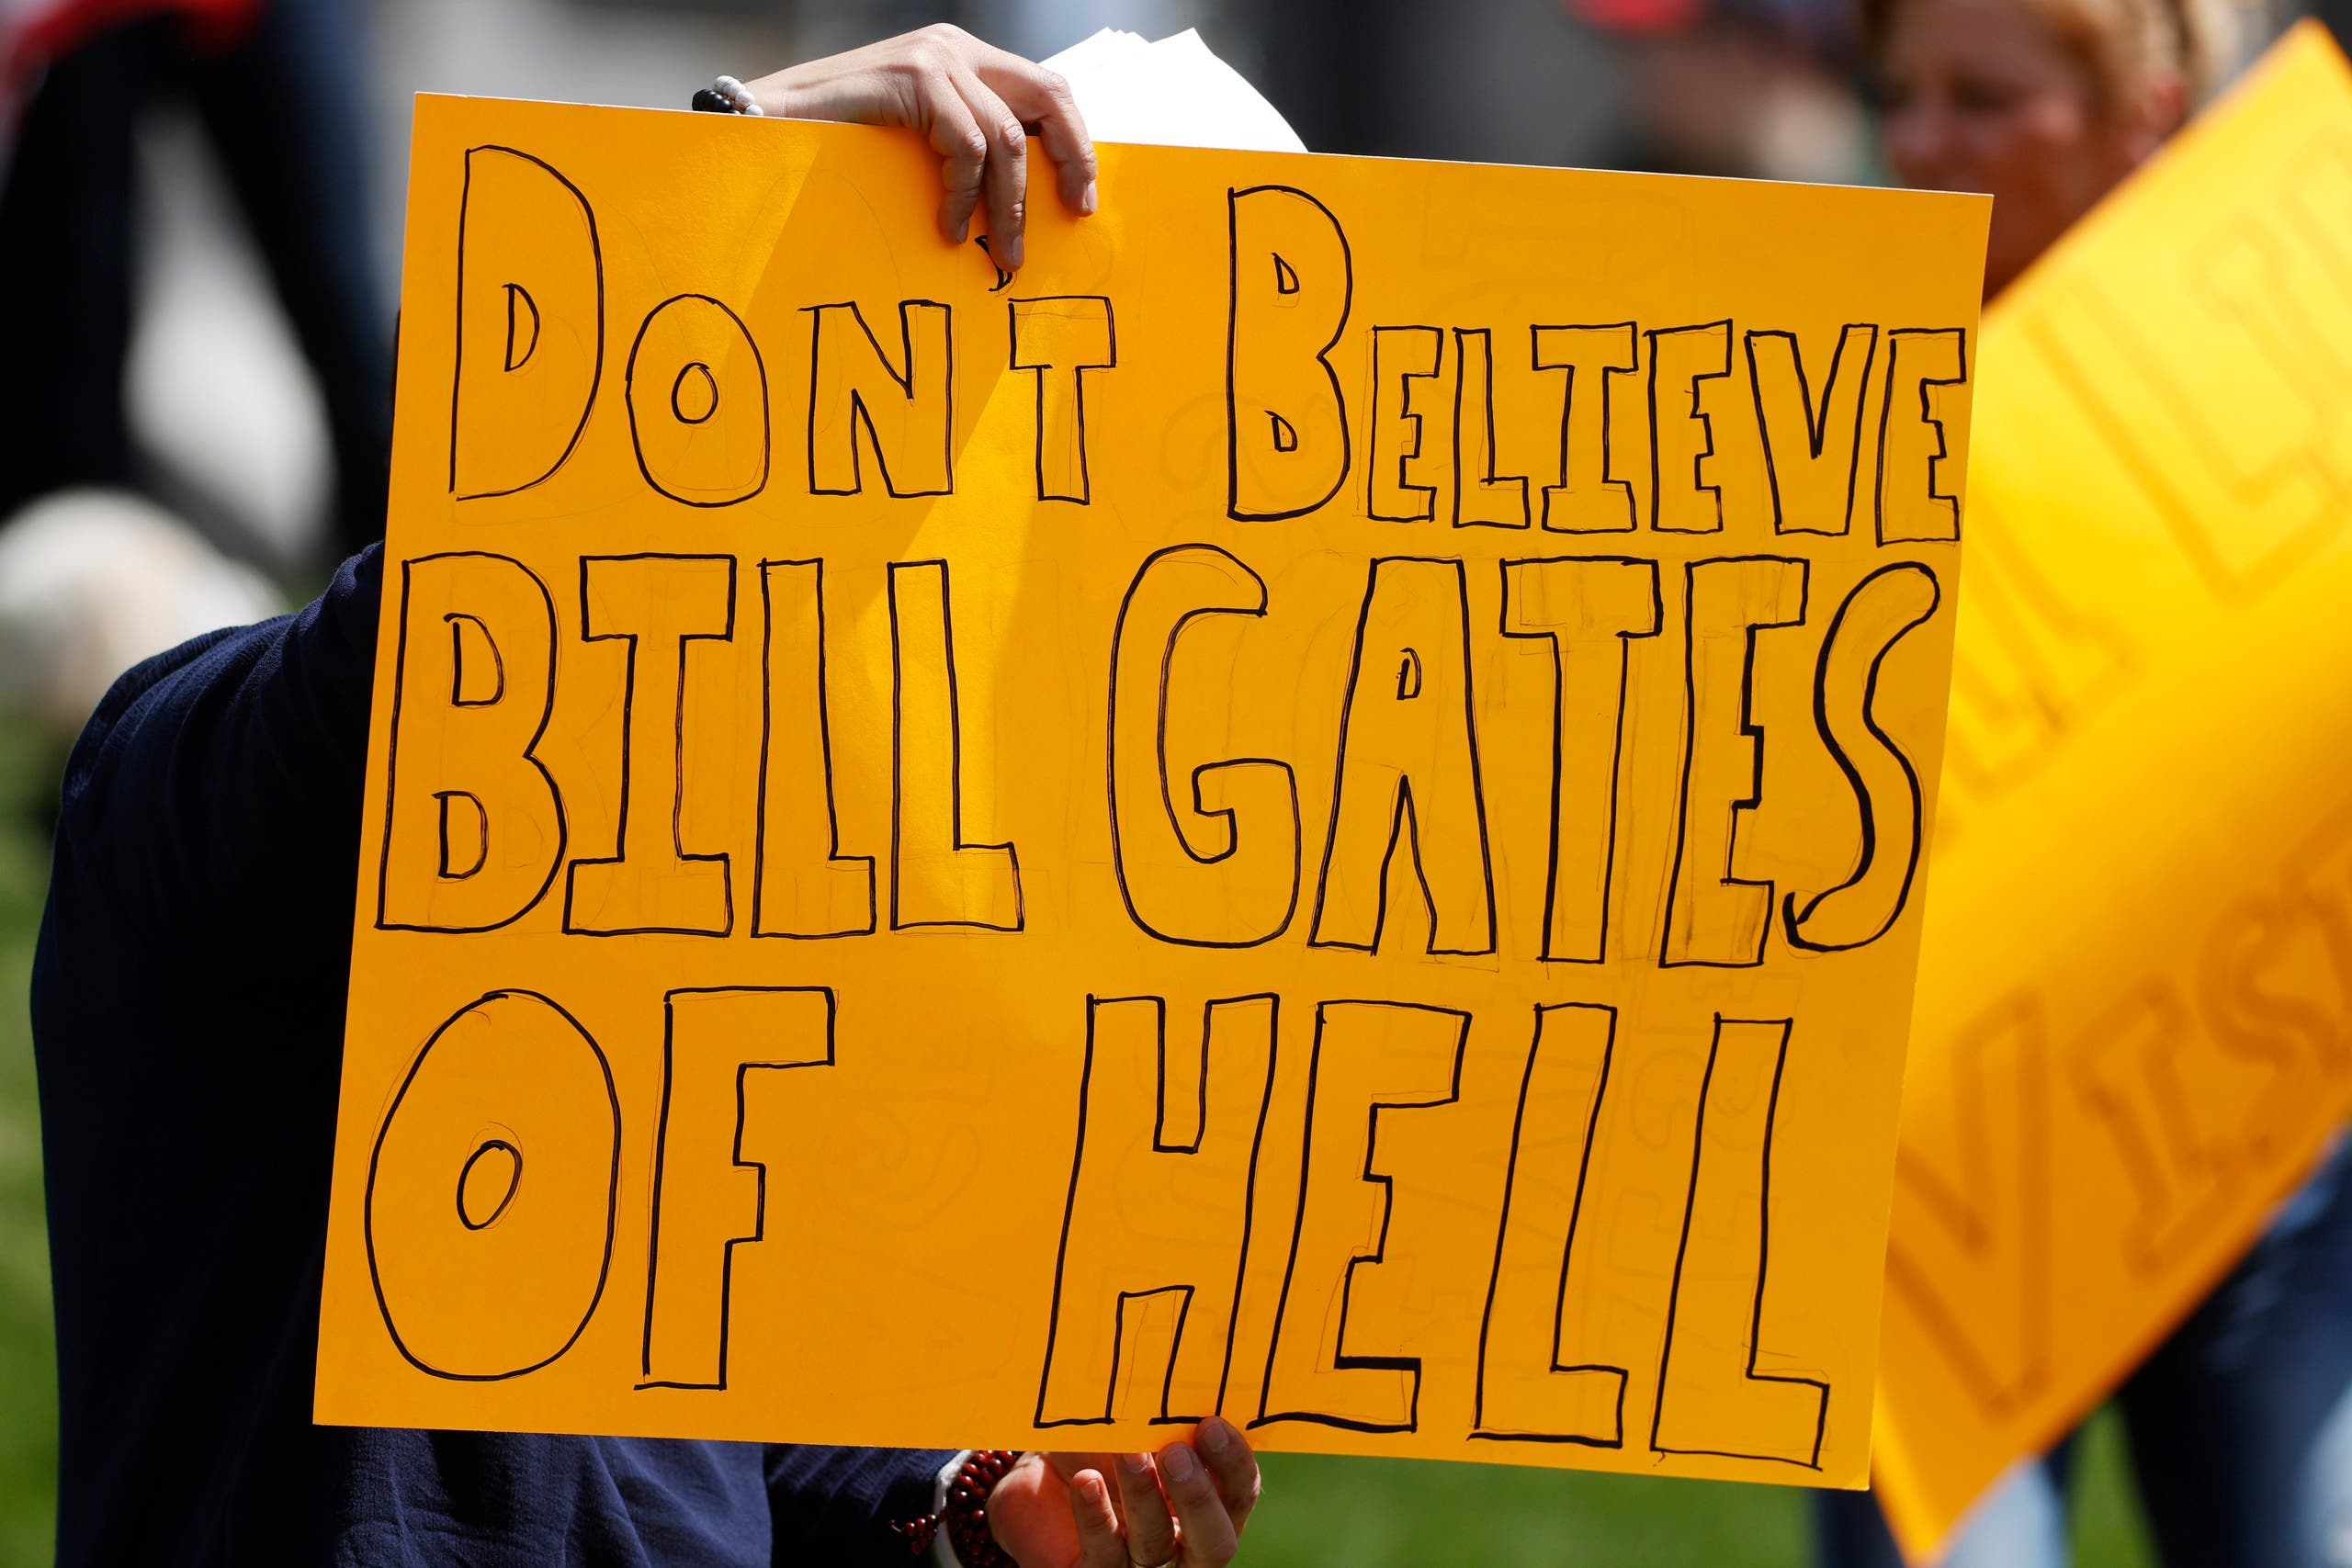 A protester waves a placard against American business magnate and philanthropist Bill Gates during a protest against the stay-at-home order issued by Colorado Governor Jared Polis to stem the spread of the new coronavirus, on April 19, 2020, in Denver. (AP)